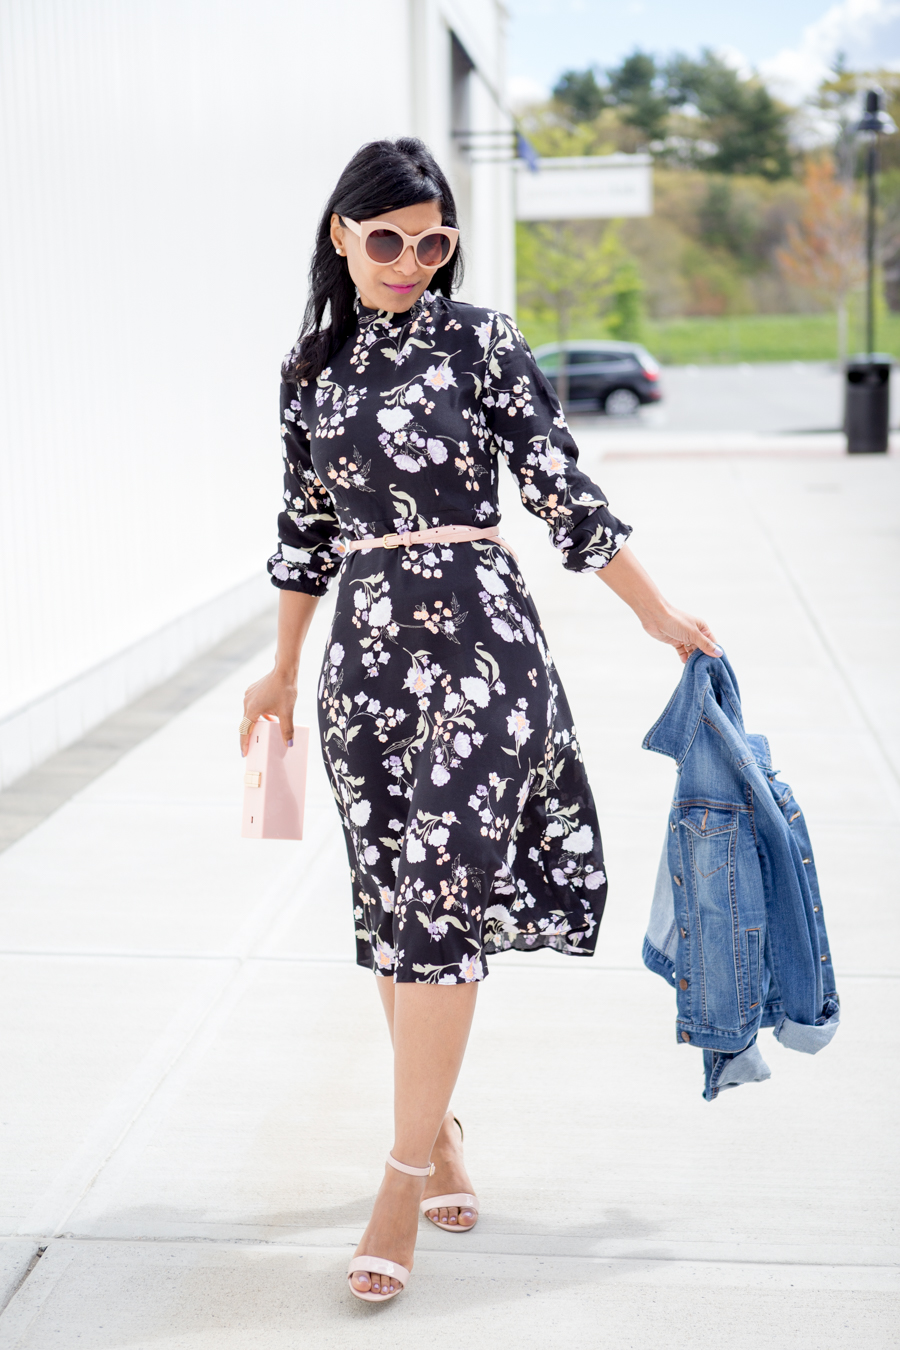 floral print, midi dress, feminine style, pink accessories, blush pink, petite fashion, spring style, spring outfit, dressy outfit, casual outfit, asos petite, loft, natasha couture, bp shoes, nordstrom, petite blogger, boston blogger